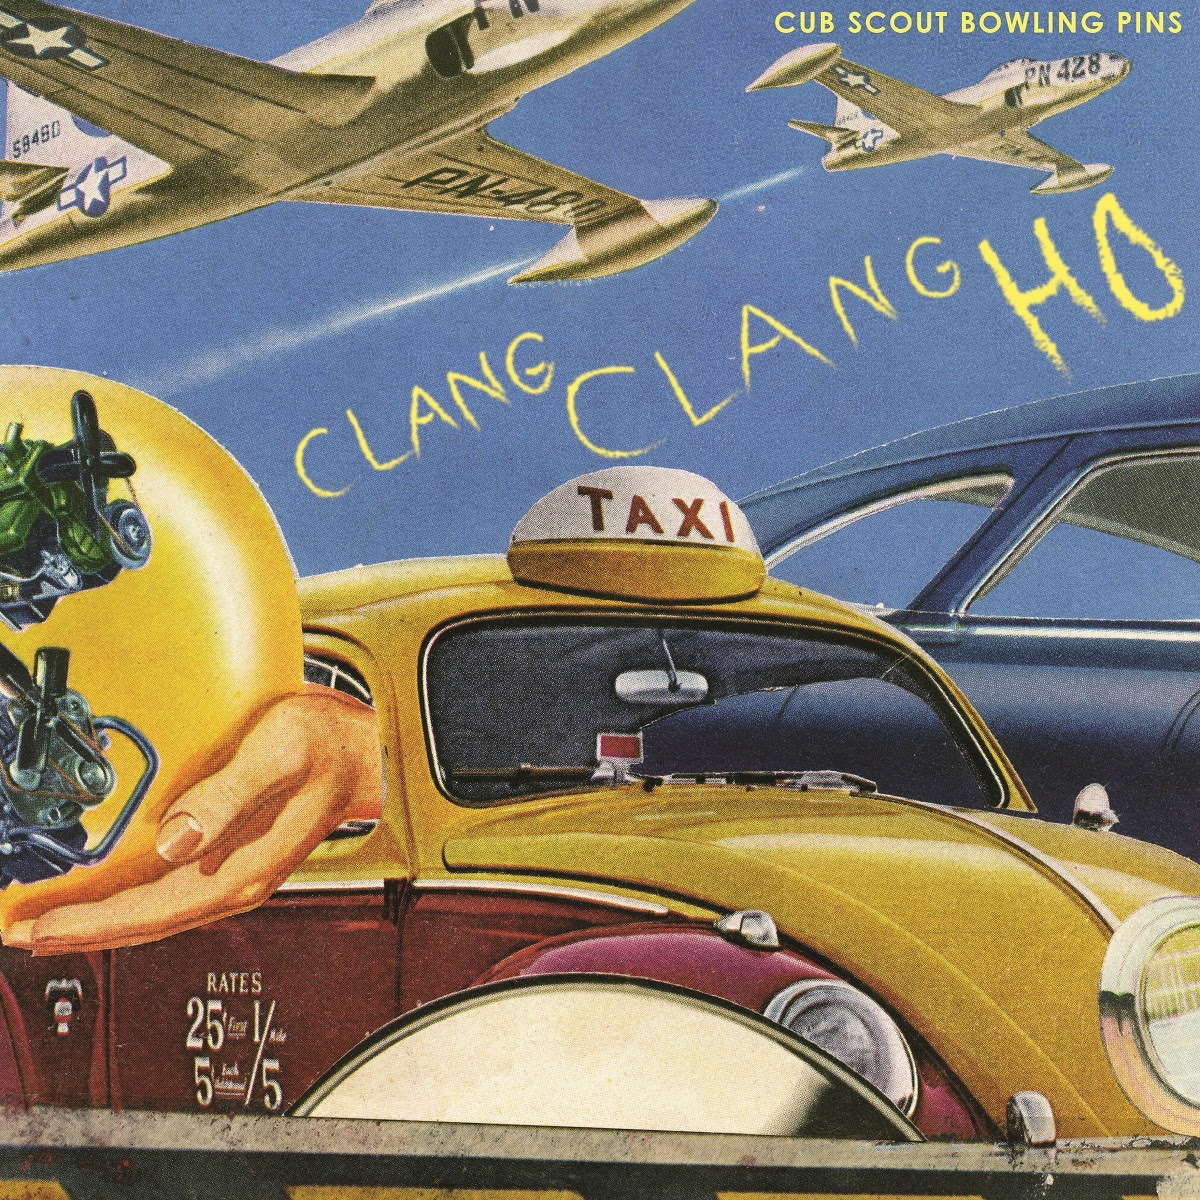 Cub Scout Bowling Pins: Clang Clang Ho [Album Review]